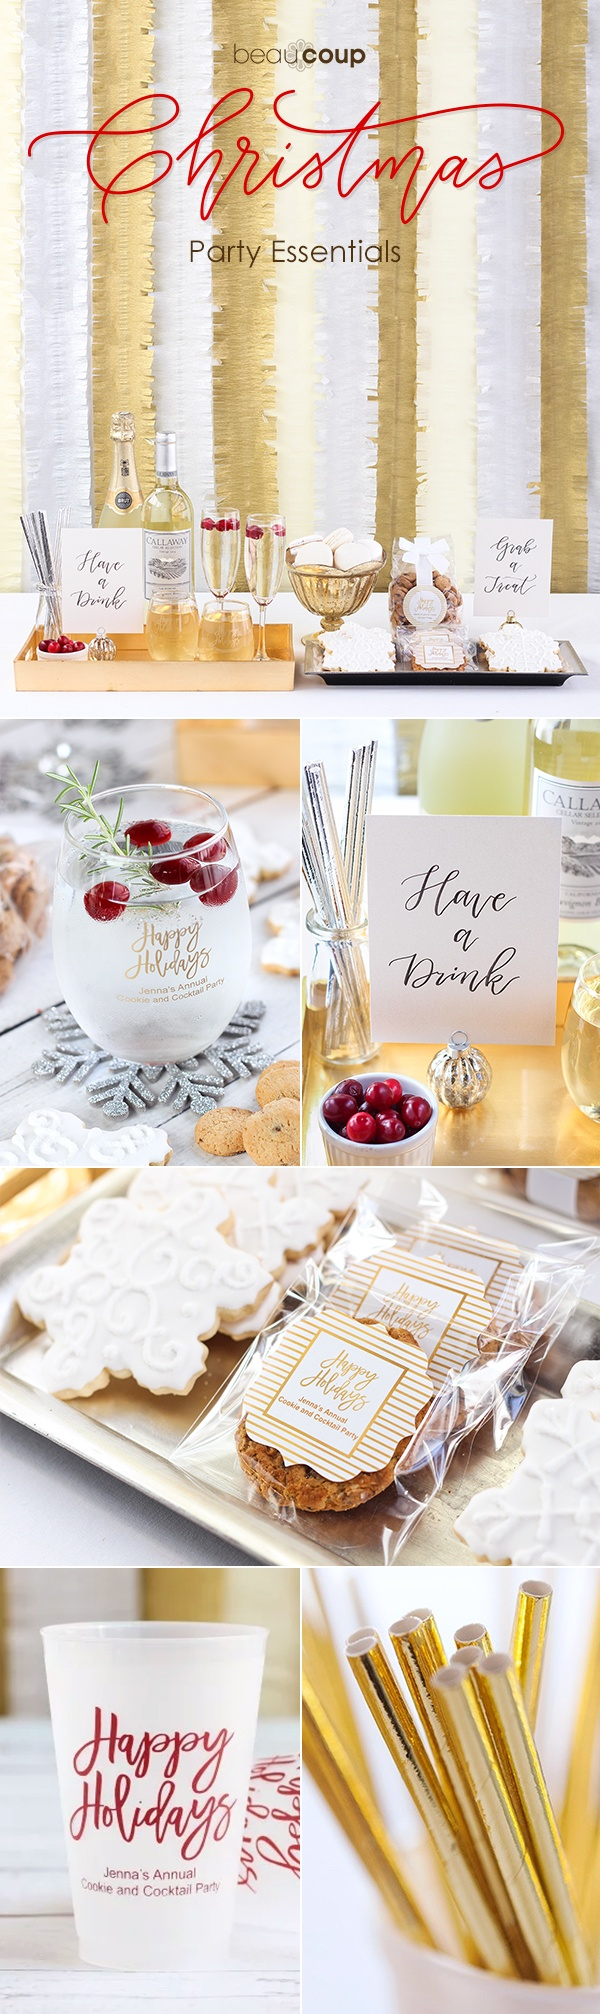 Christmas Party Must-Haves | Beau-coup